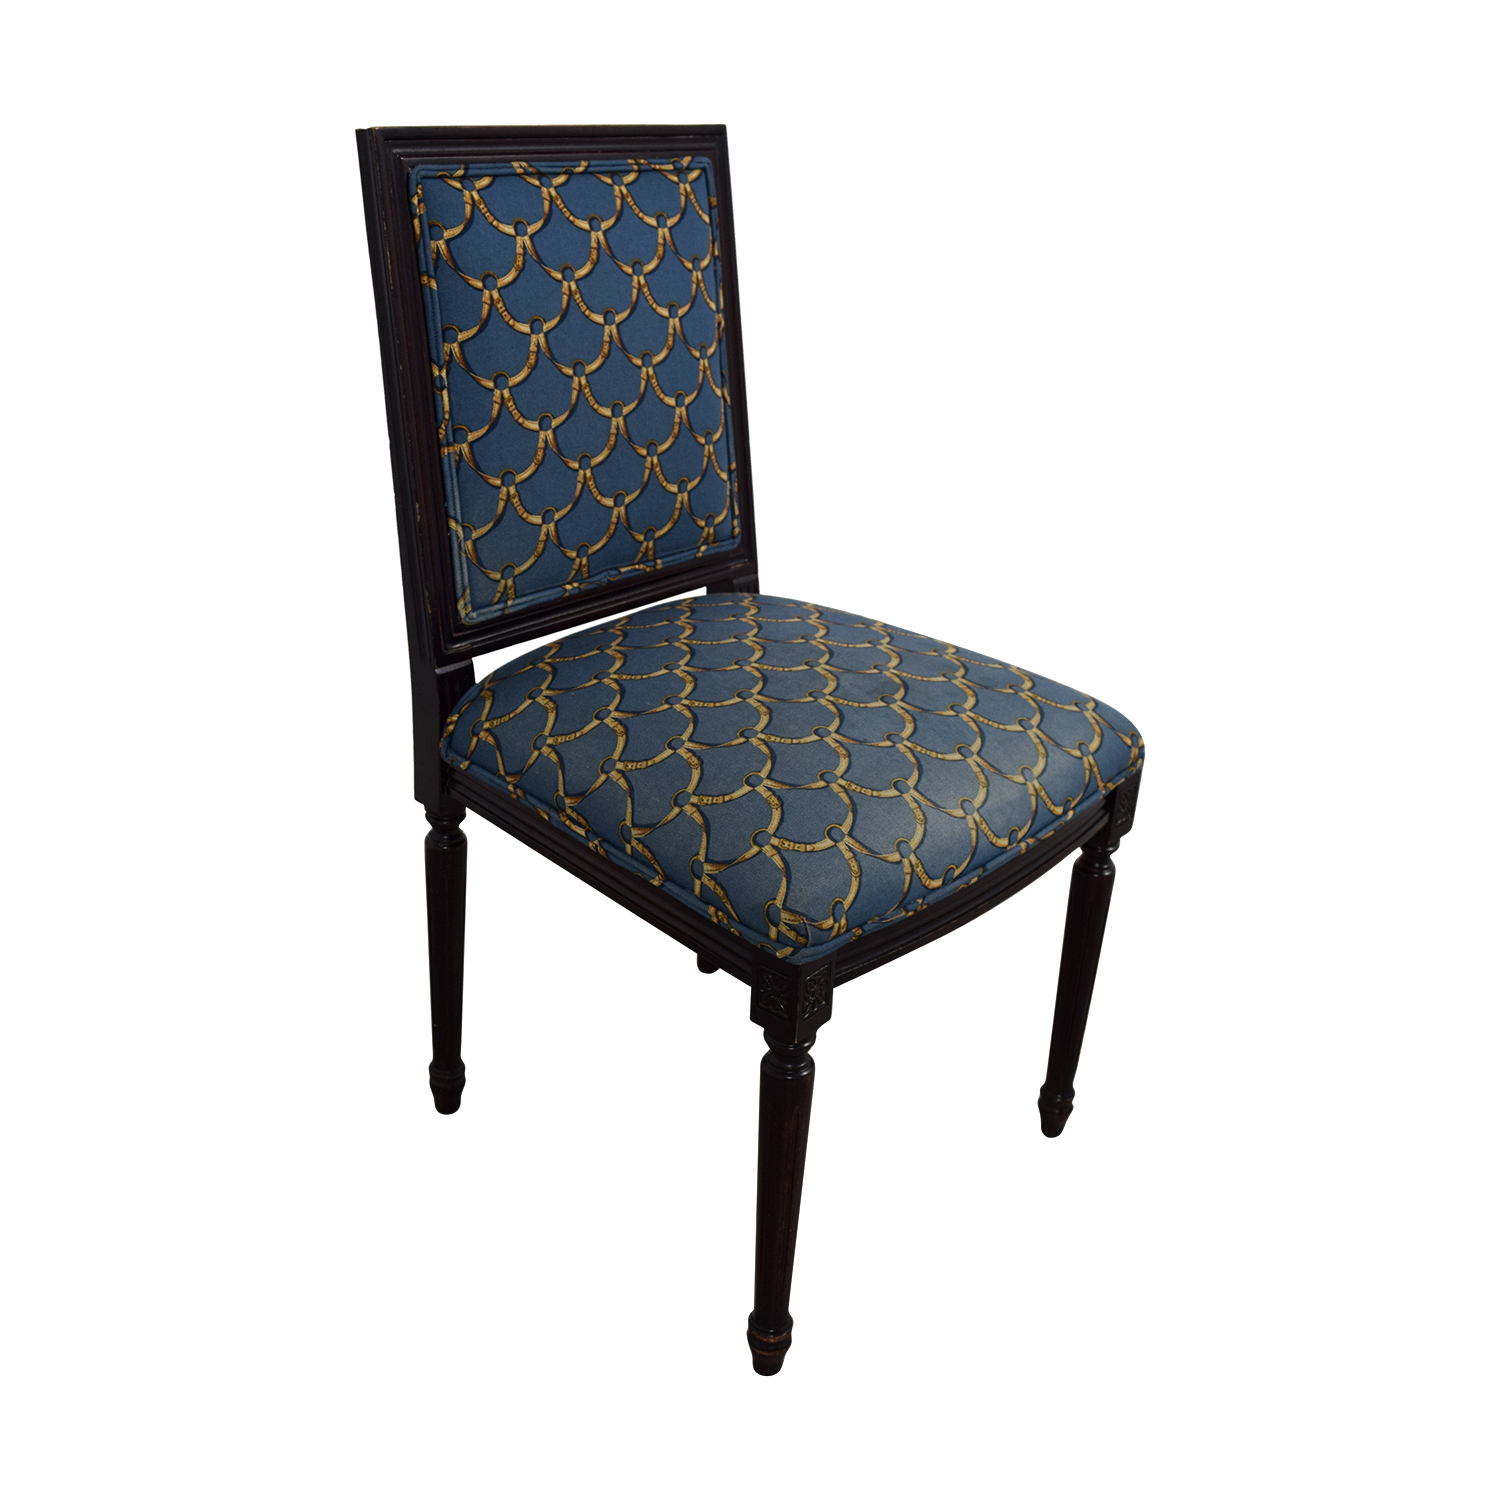 ballard designs upholstered dining chairs brooklyn bonded leather lounger chair and ottoman 88 off blue gold